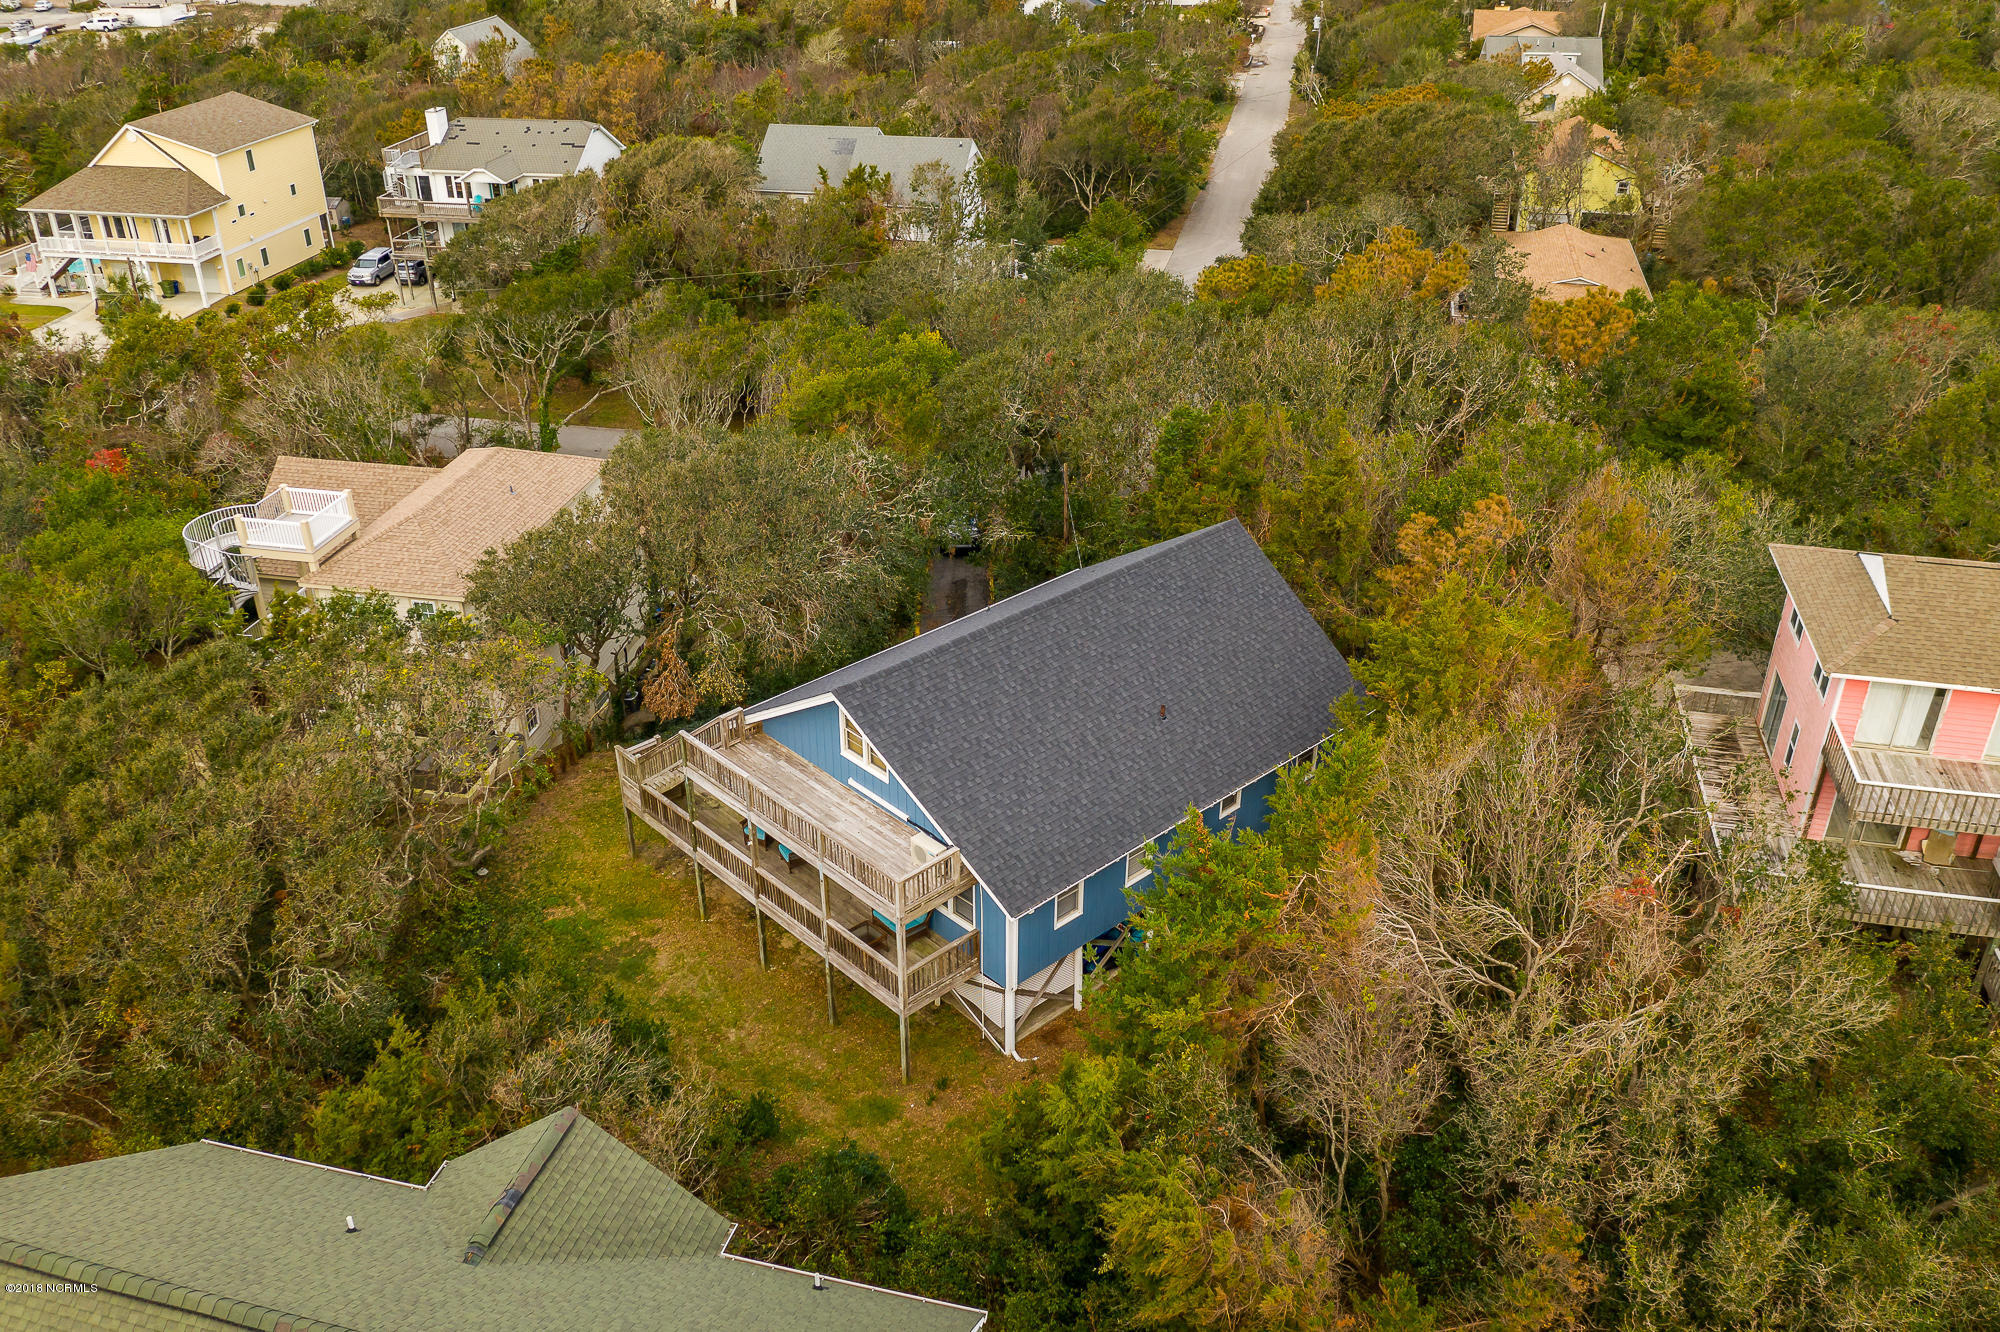 7807 Forest Drive, Emerald Isle, North Carolina, 3 Bedrooms Bedrooms, 6 Rooms Rooms,2 BathroomsBathrooms,Single family residence,For sale,Forest,100141552